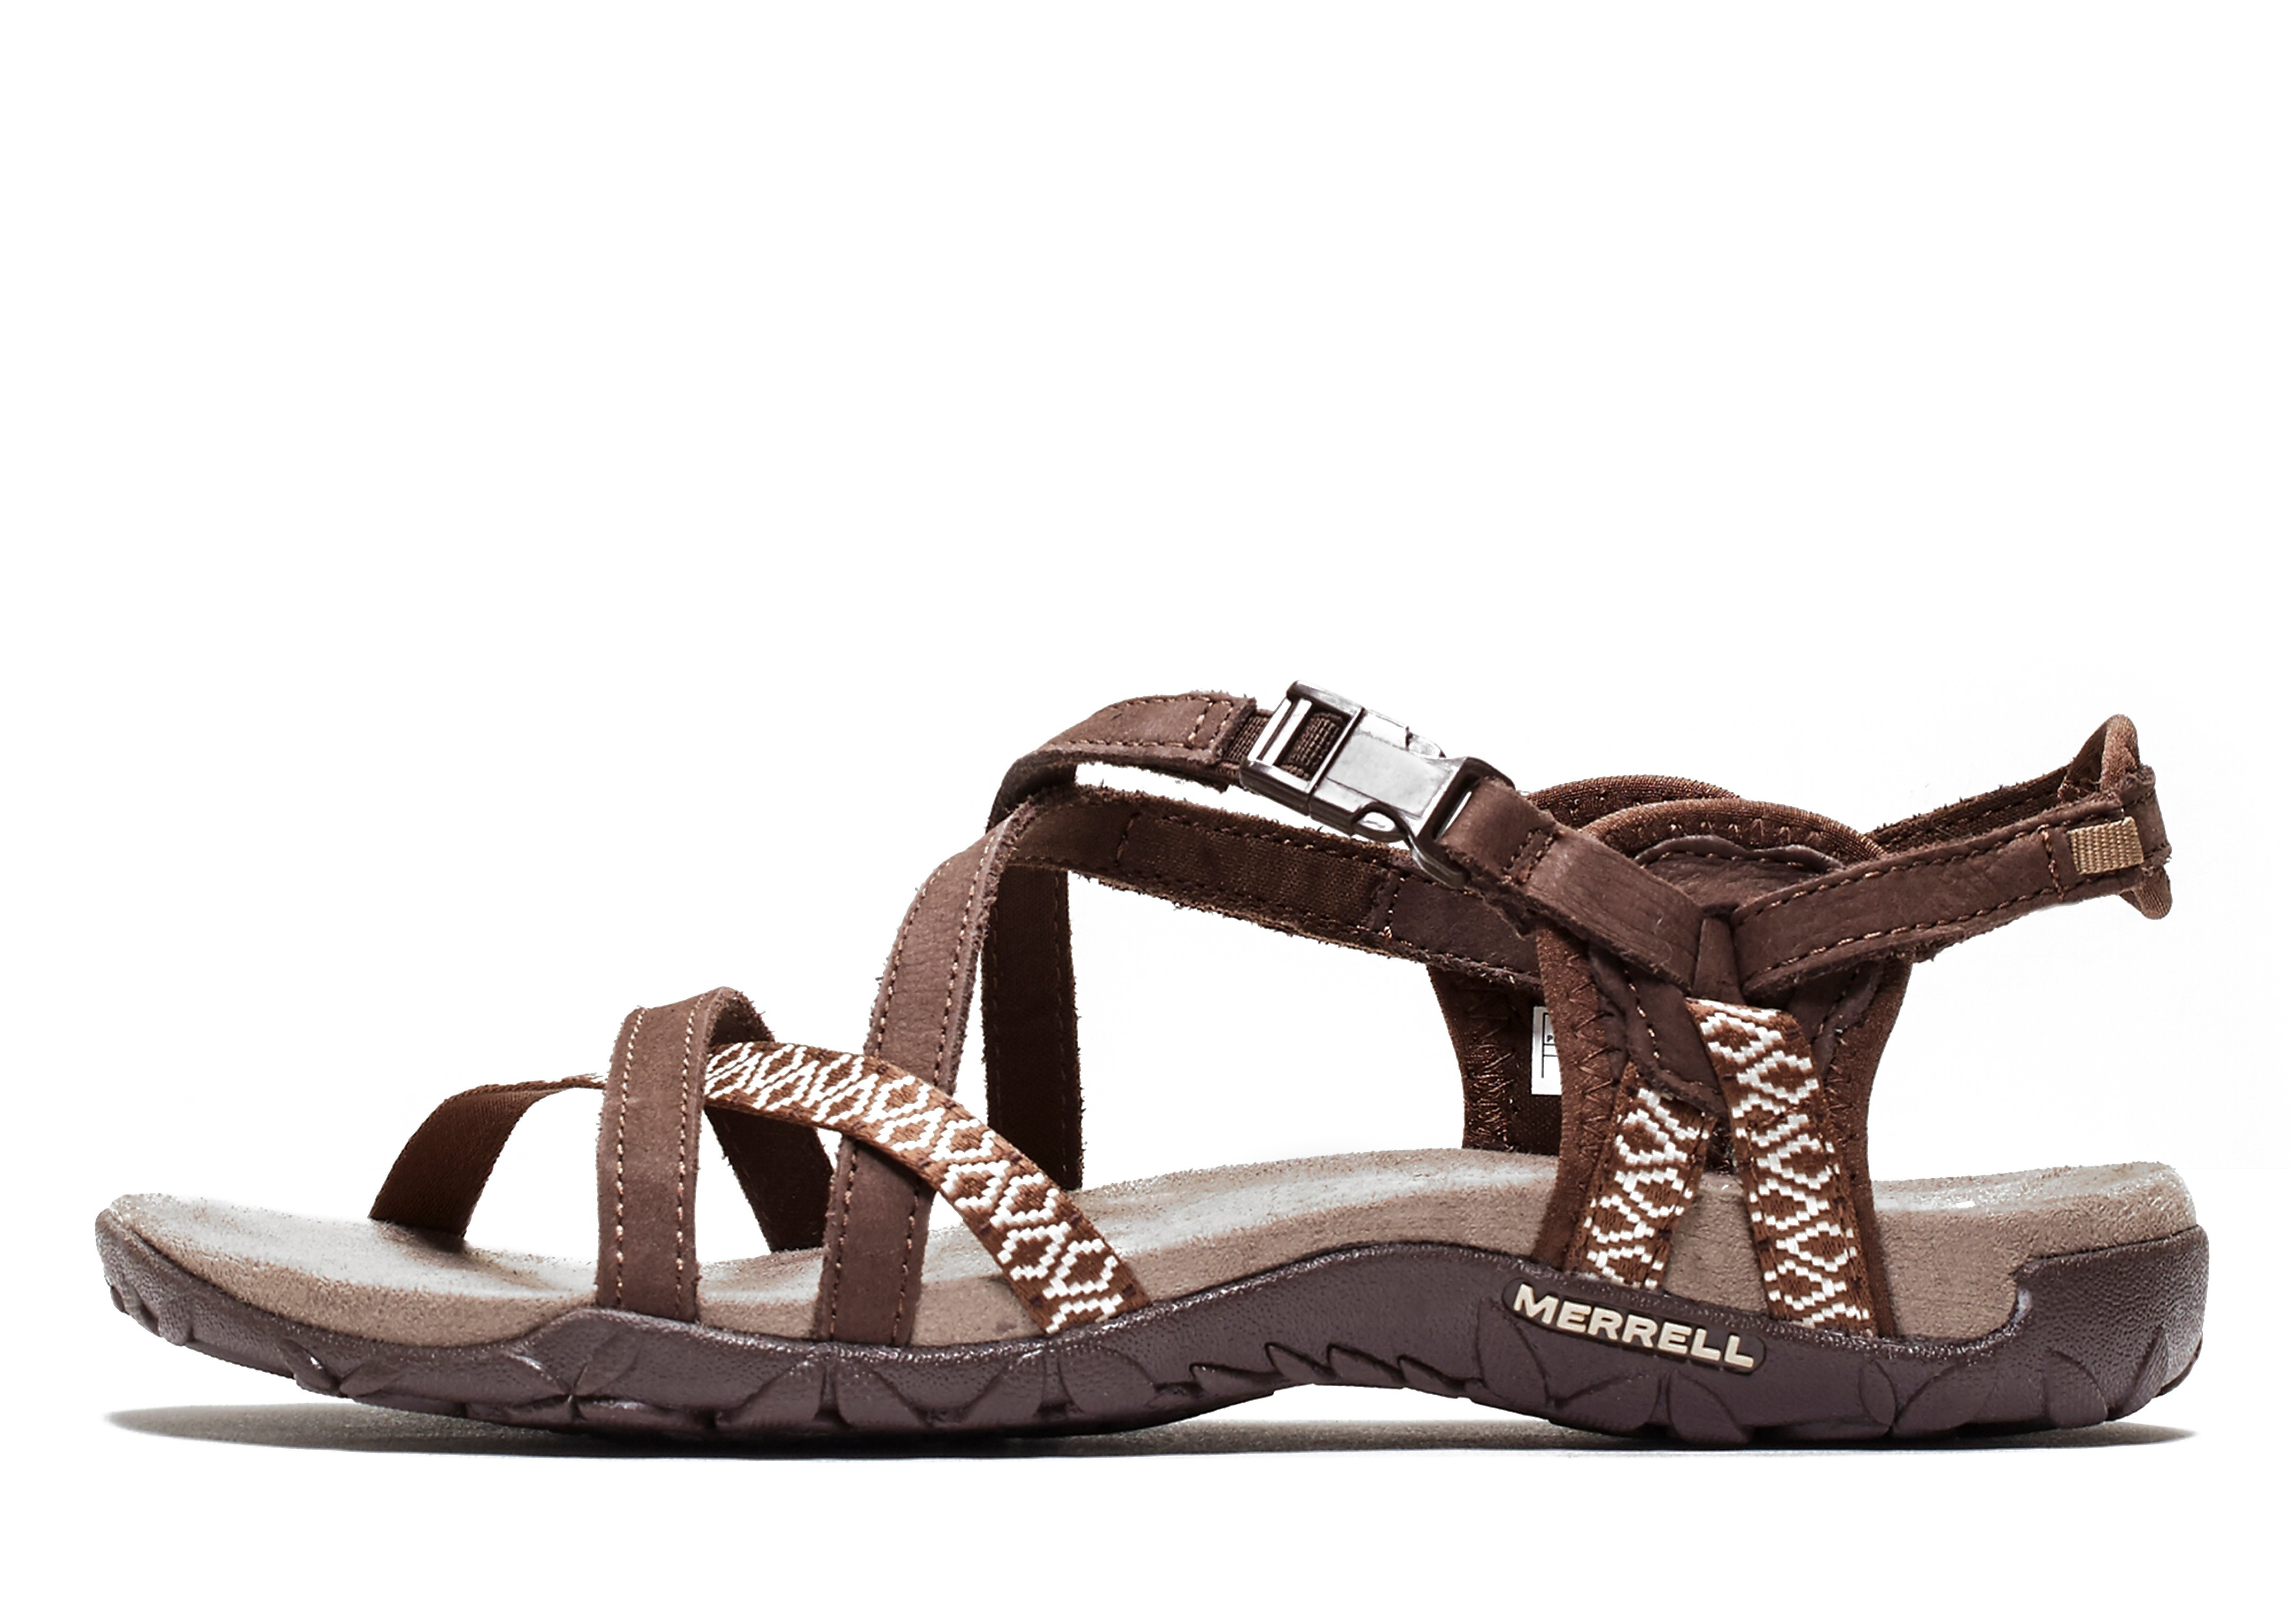 Merrell Terran Lattice 2 Sandals Women's